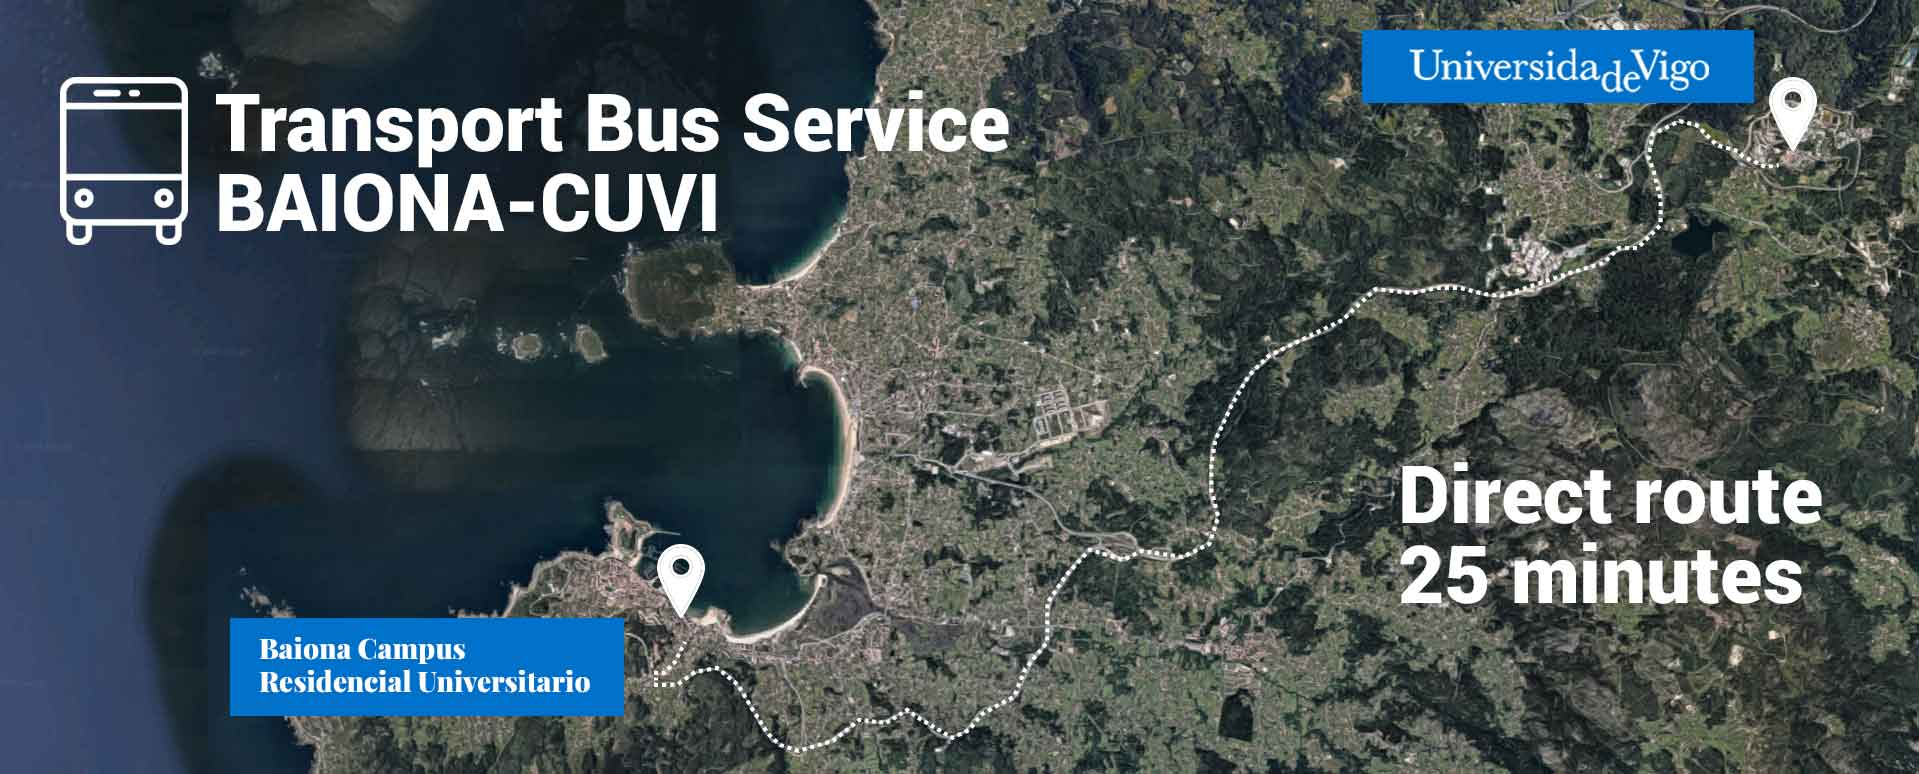 Bus service map